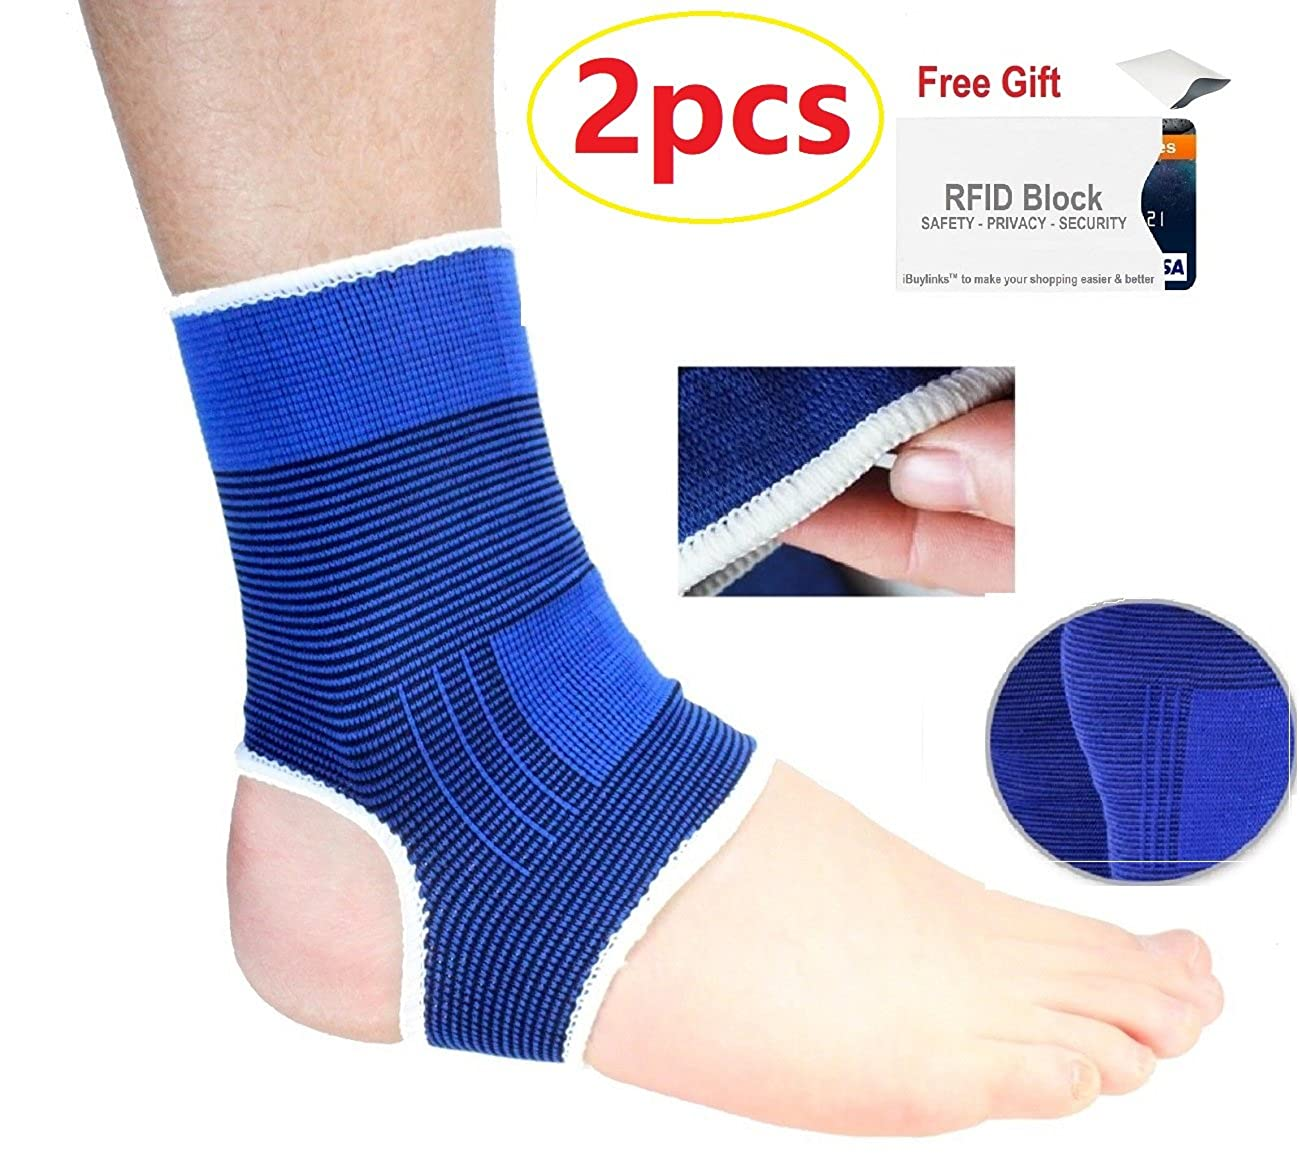 Top1 Ankle Brace Elastic Muscle Support Compression Sleeve (1 Pair) + Extra 1 PC LXF